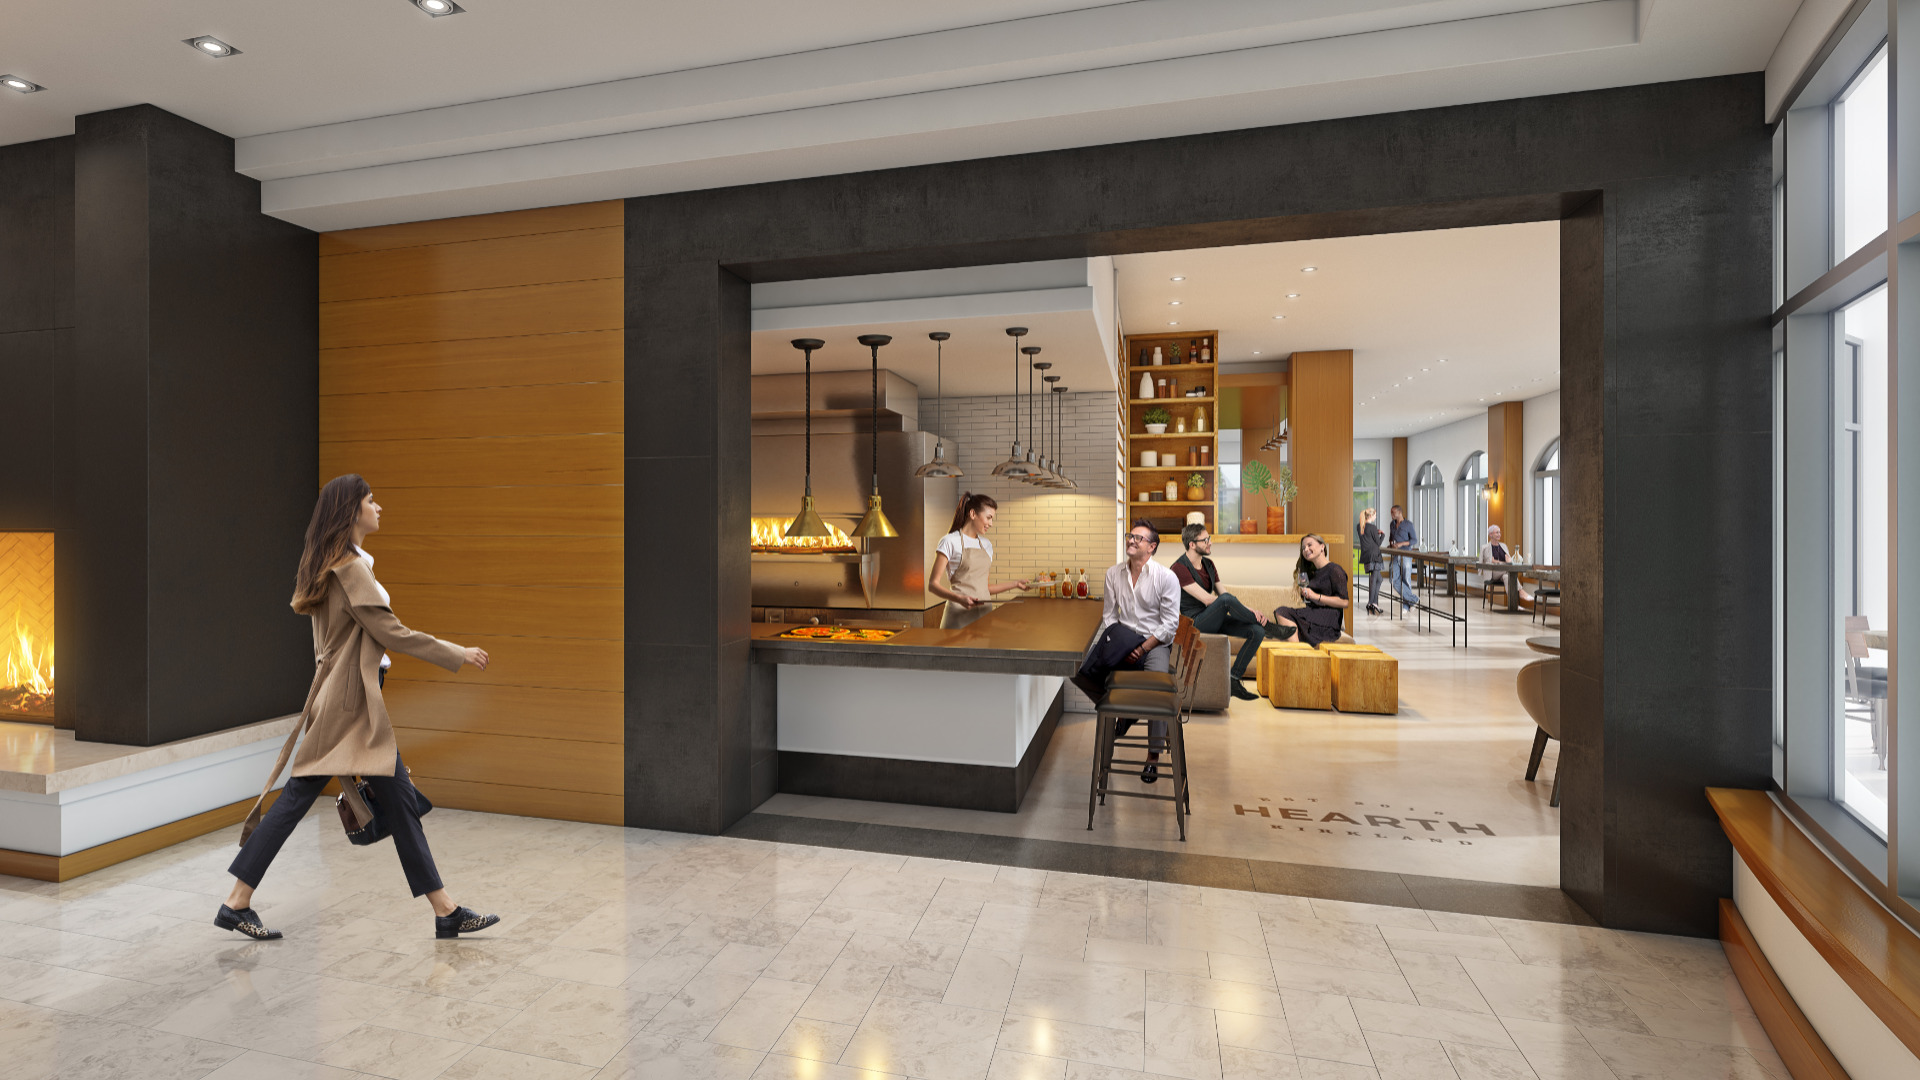 Hearth Restaurant Rendering